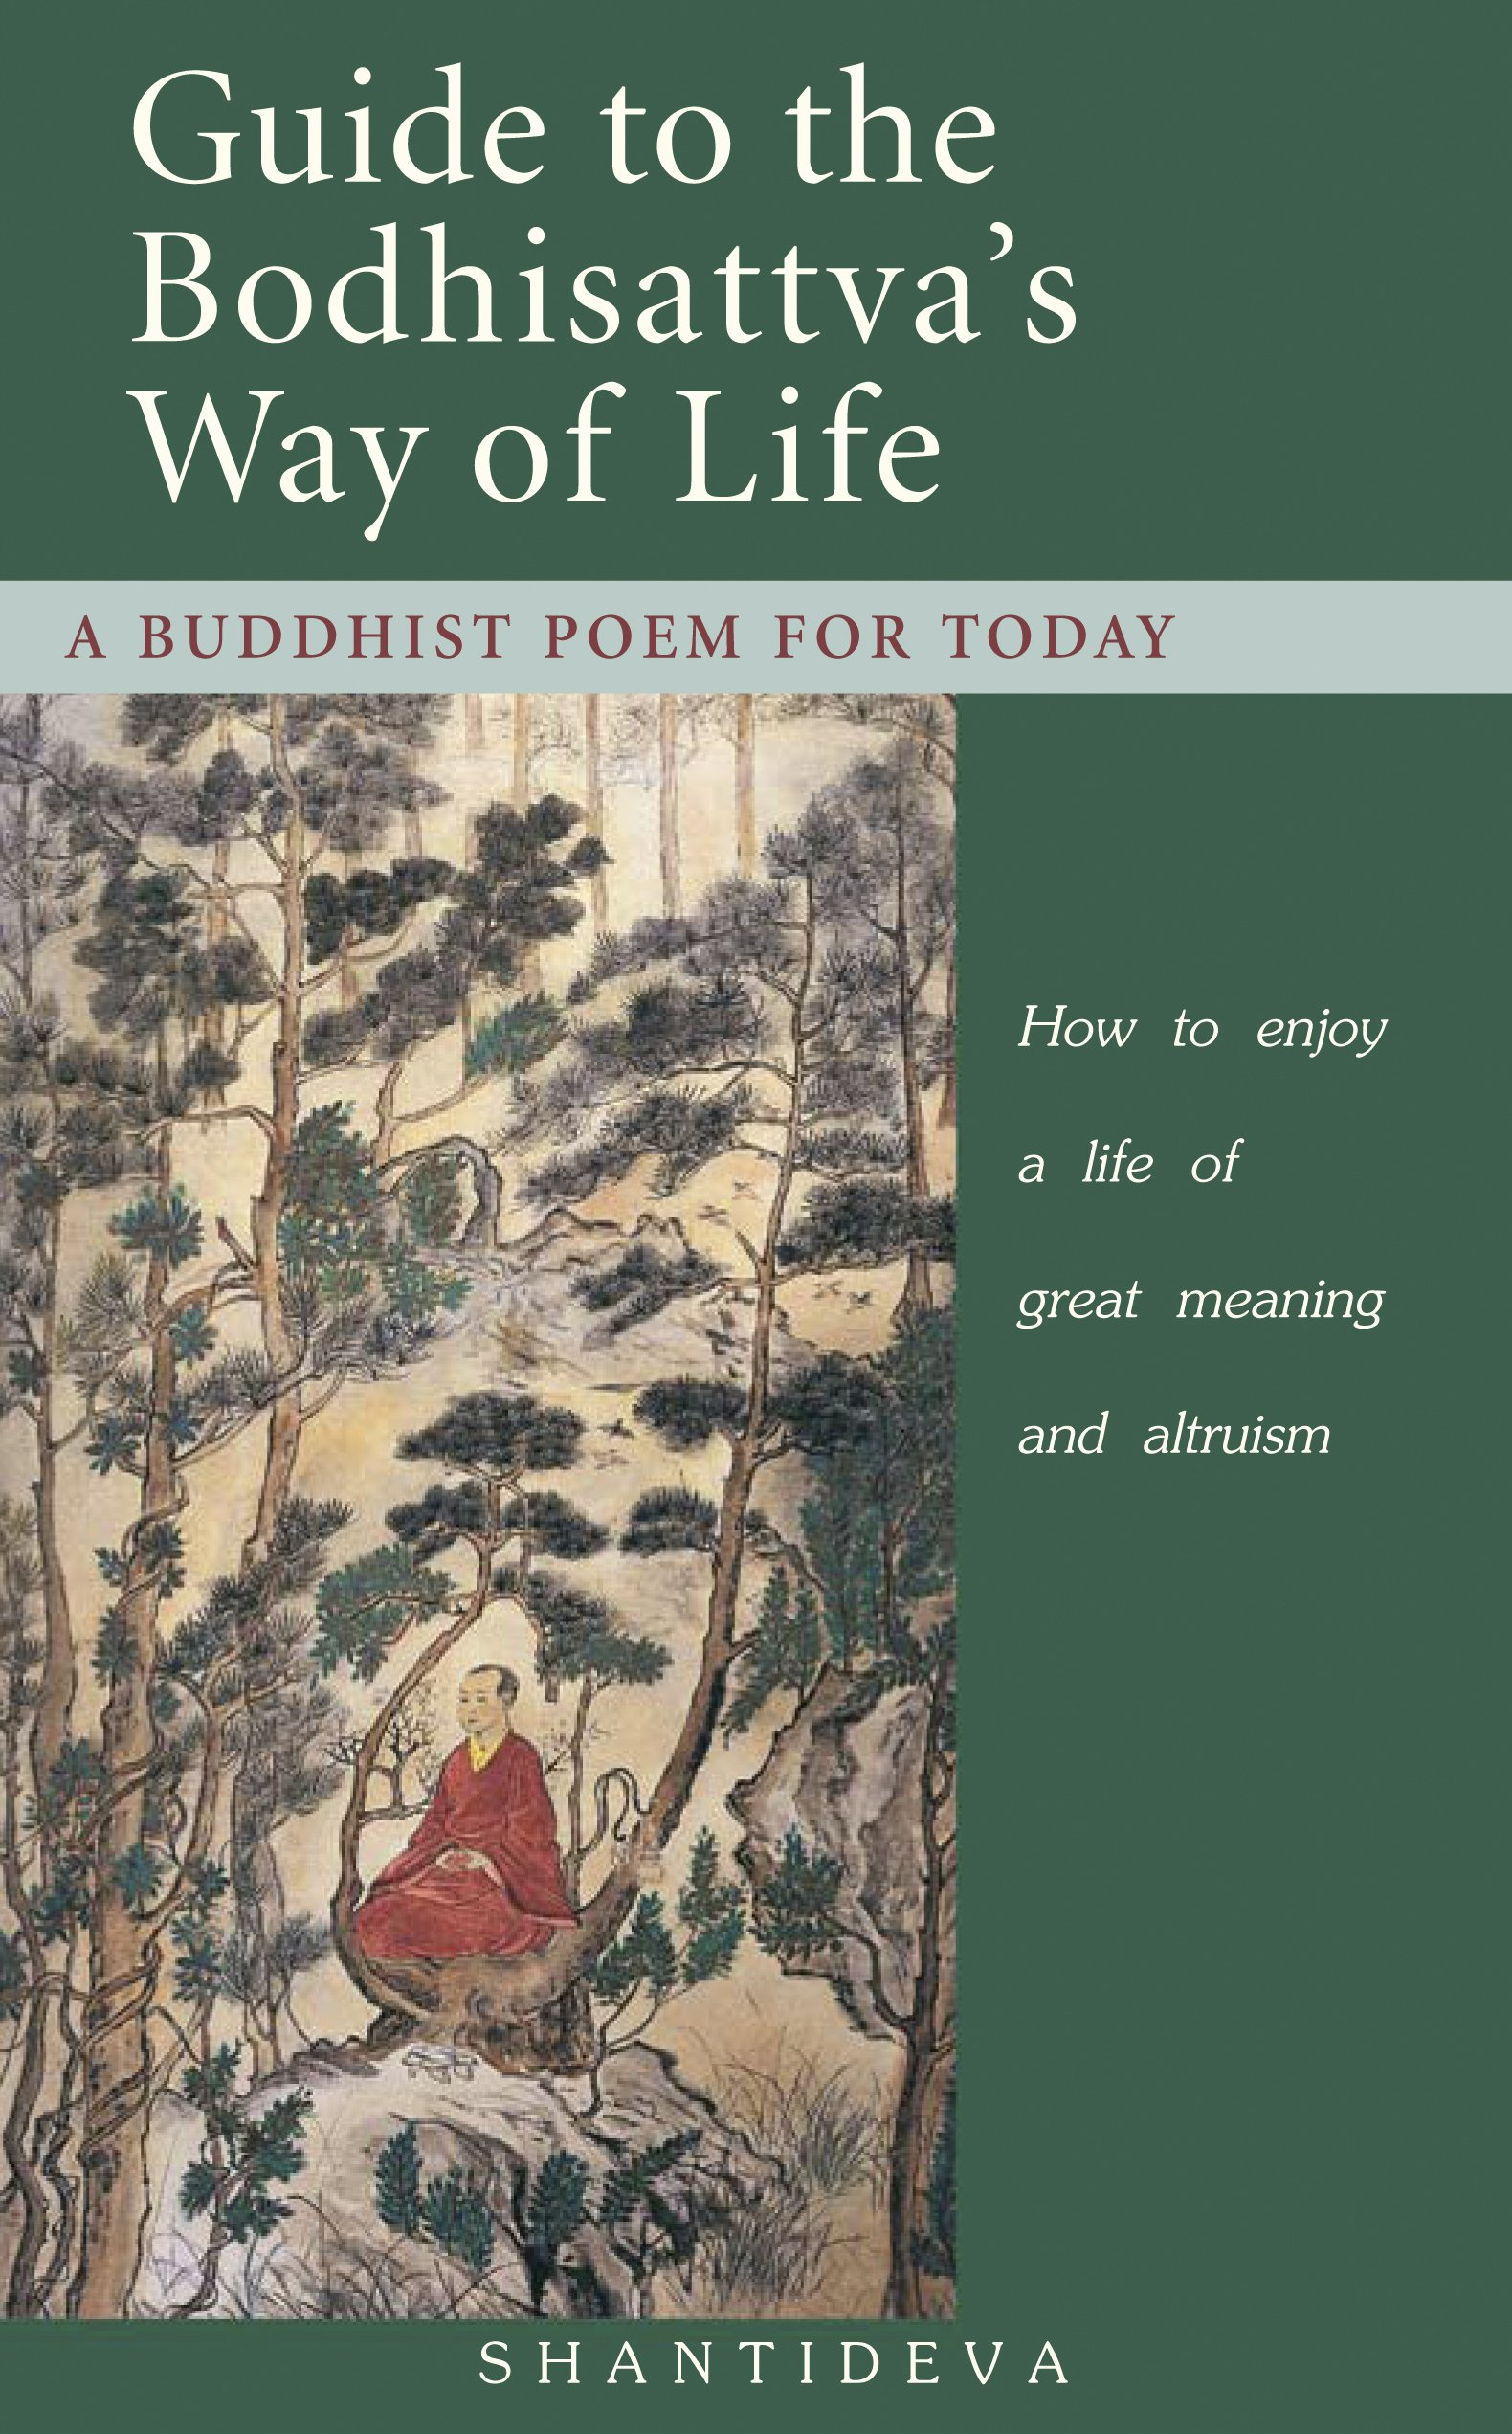 Guide to the Bodhisattva's Way of Life